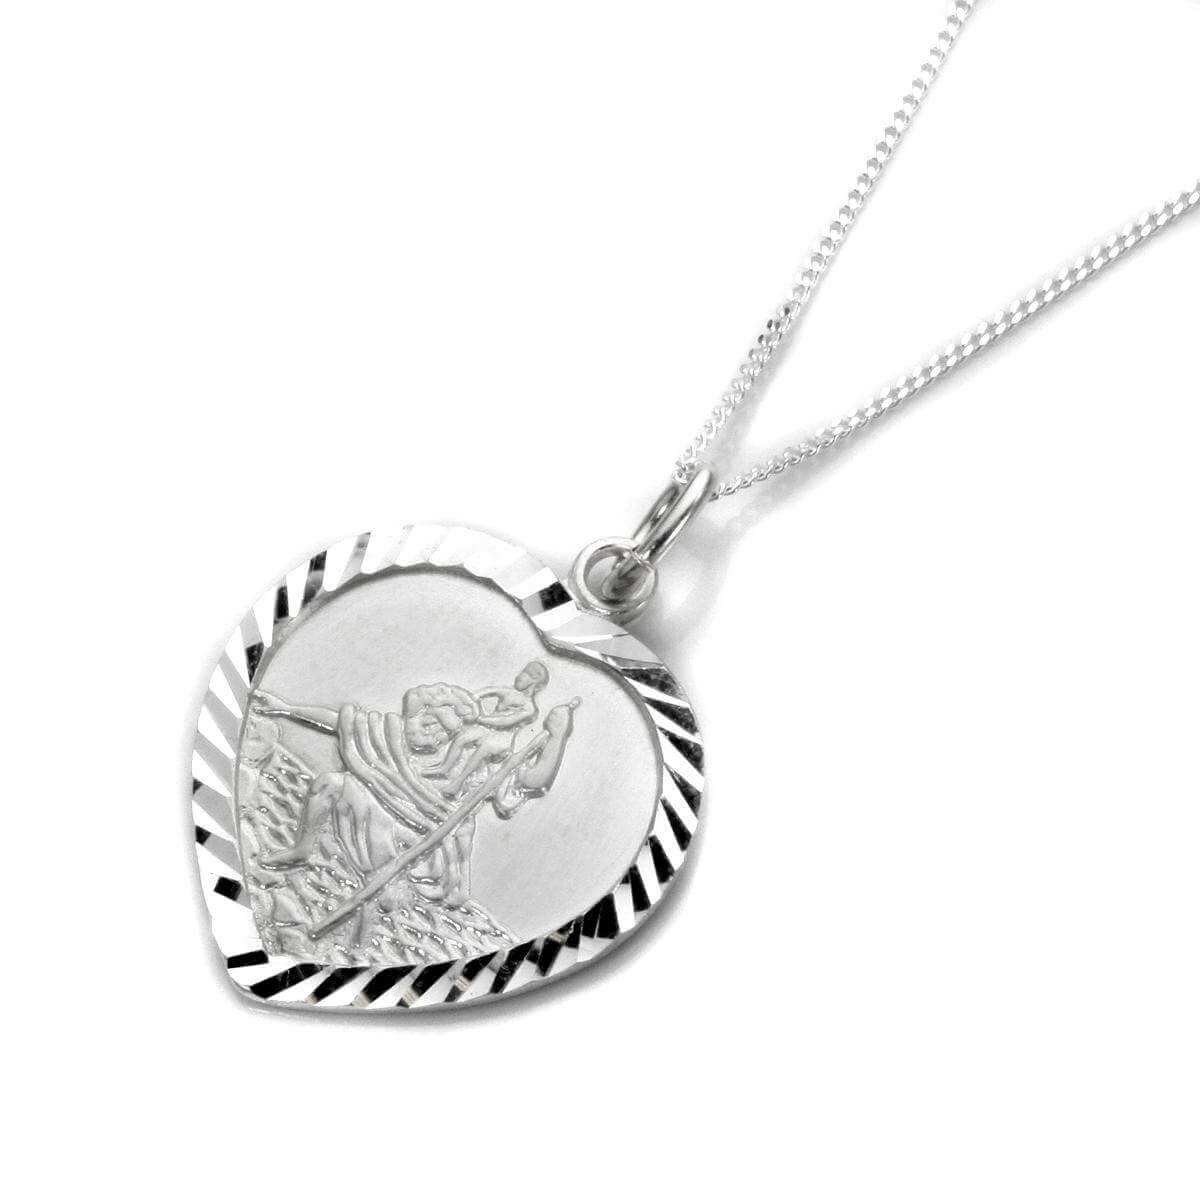 Personalised Sterling Silver St christopher Heart Necklace